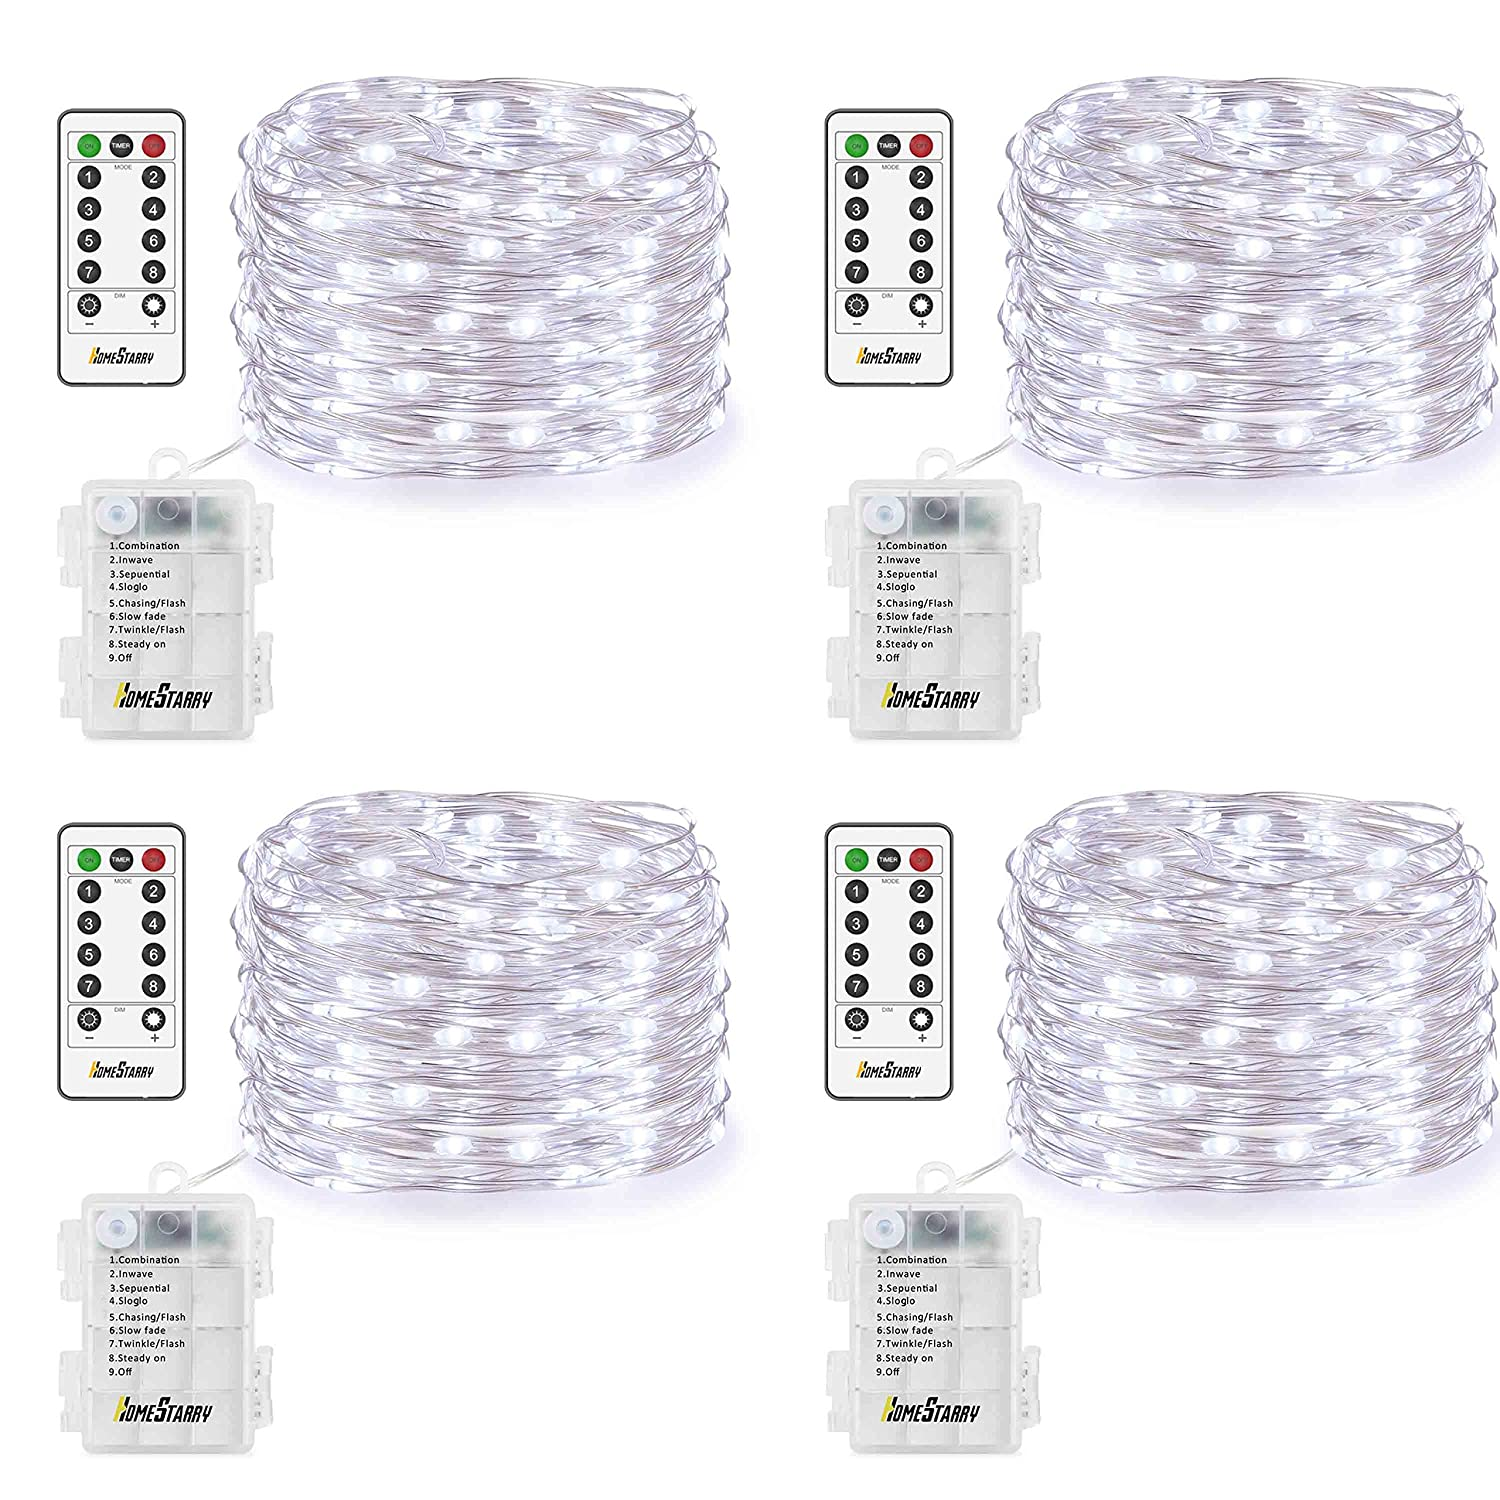 4 Pack Fairy Lights Fairy String Lights Battery Operated Waterproof 8 Modes Remote Control 50 Led String Lights 16.4ft Silver Wire Firefly lights for Bedroom Wedding Festival Decor (Cool White) ¡